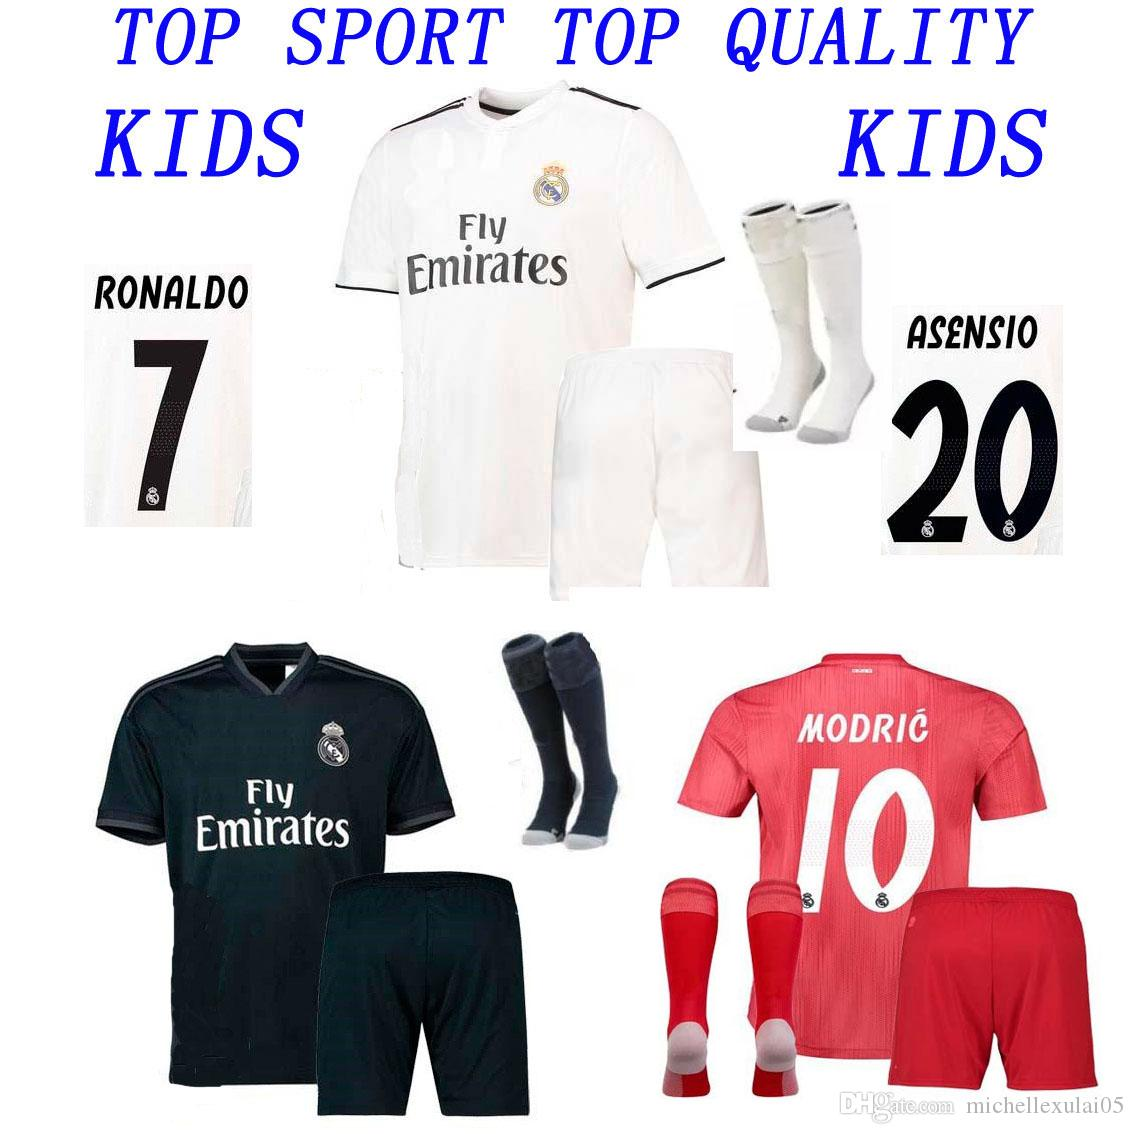 215f1e41bdc 2019 18 19 Kid Kit Real Madrid Soccer Jersey 2018/19 Boys Soccer Sets Bale  ISCO KROOS MODRIC Football Shirts Child Football Jersey Shorts Sock From ...